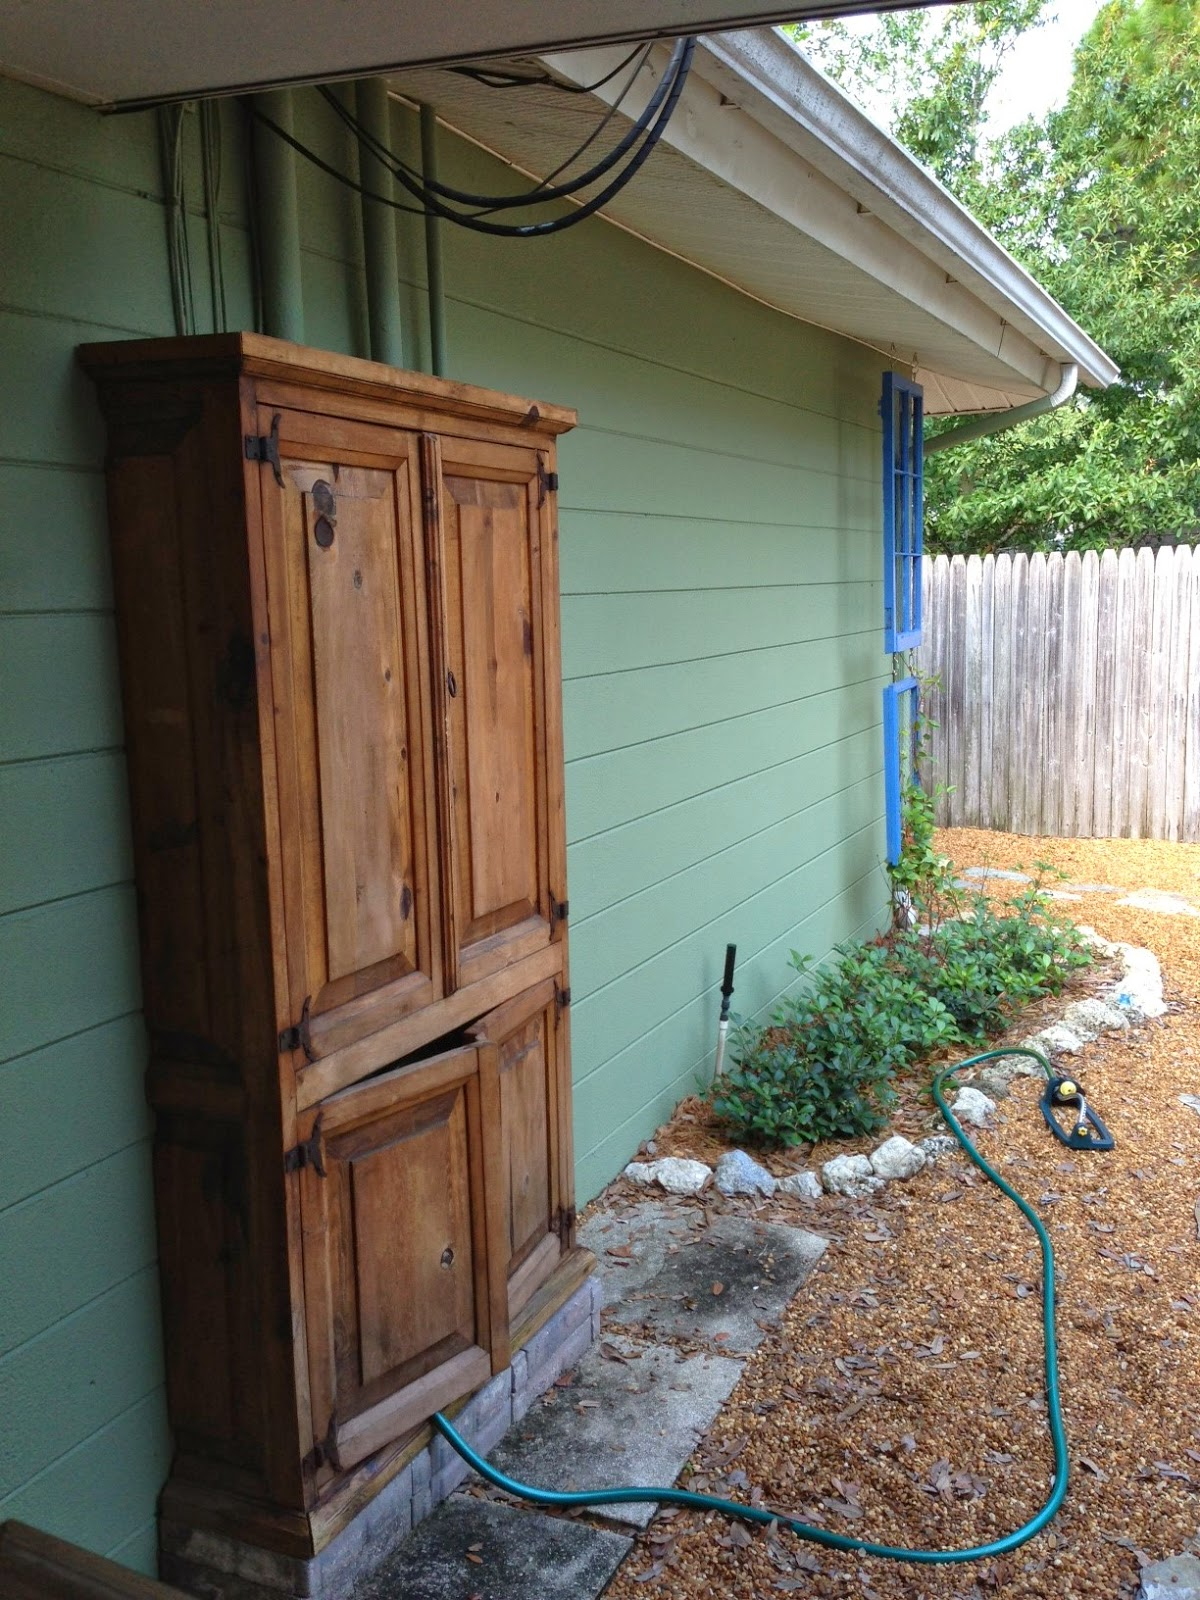 Shabby Glam Armoire Covers Unsightly Wires